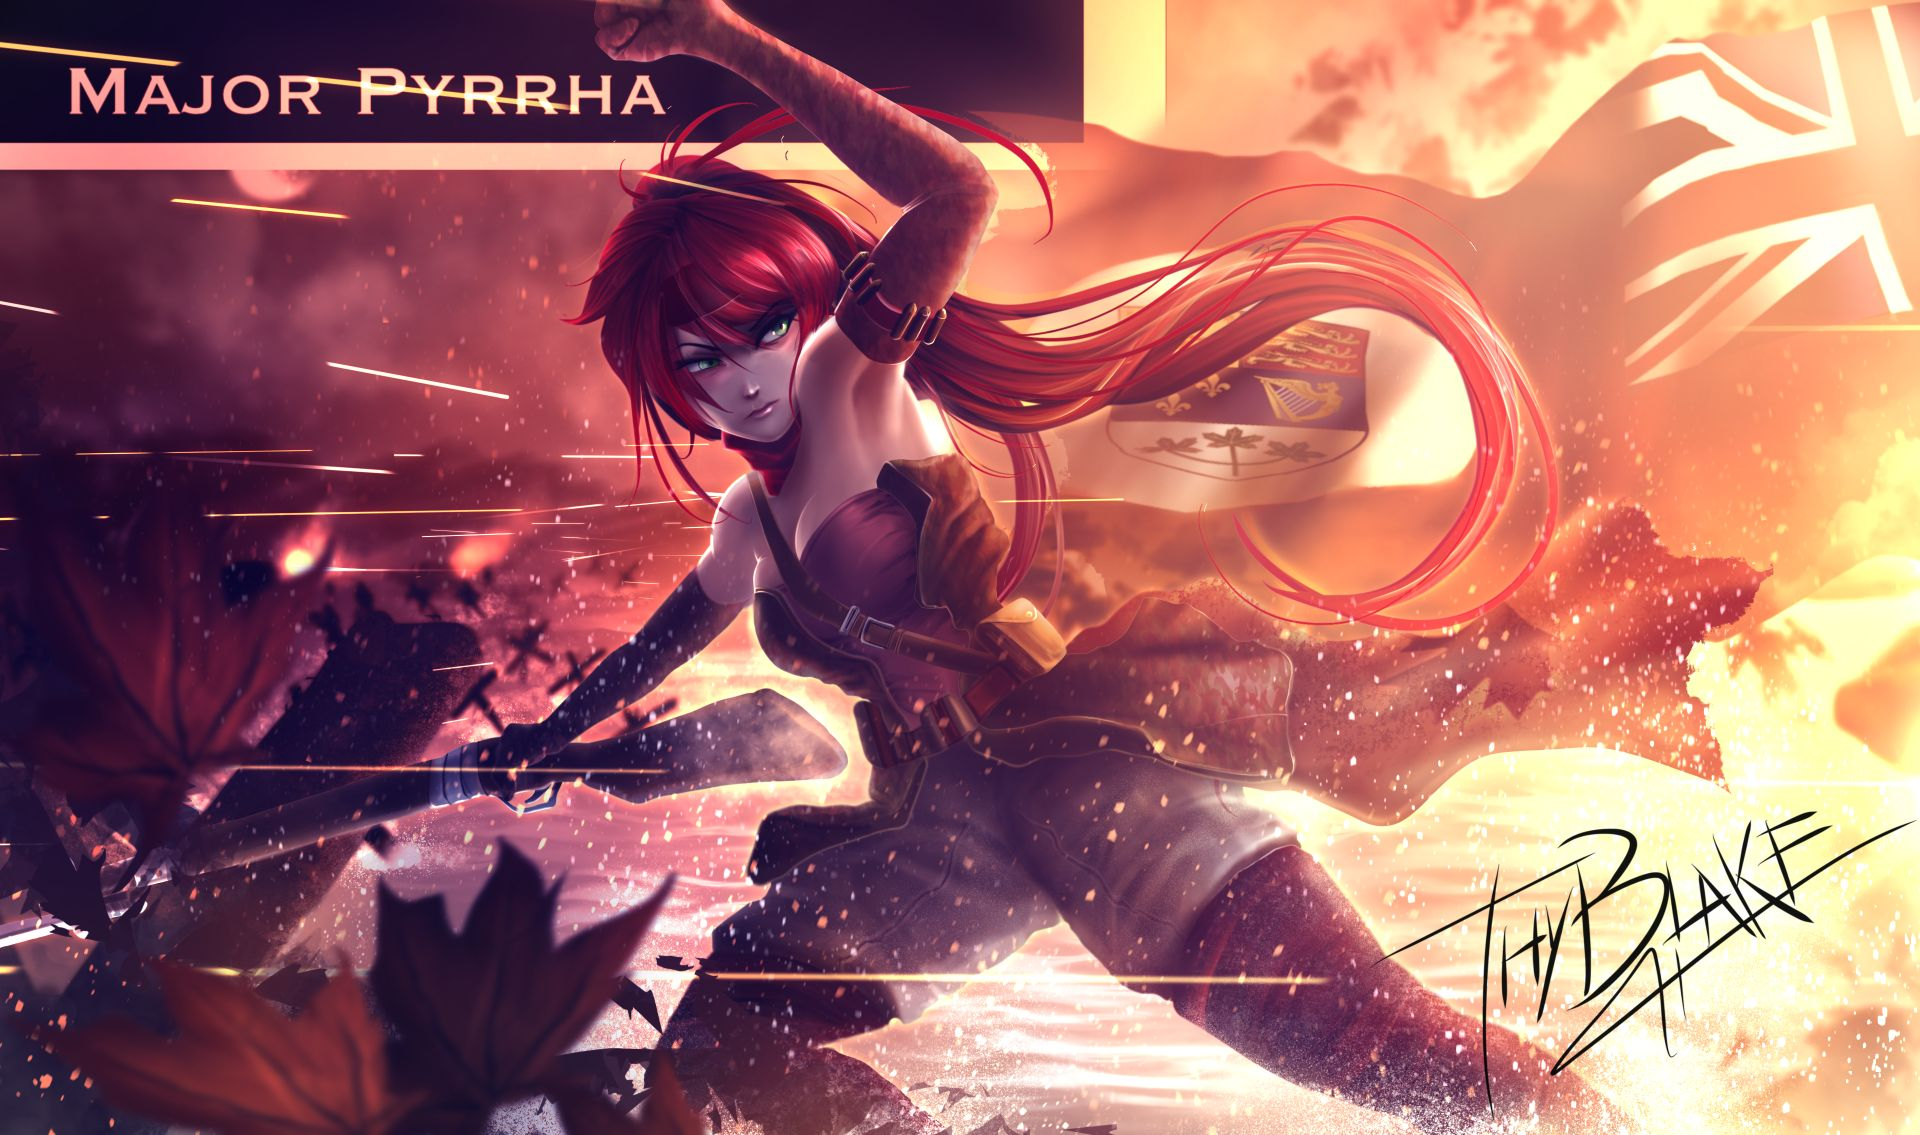 rwby__ww2_nations__canada___pyrrha_by_thyblake_dcec6jk.jpg